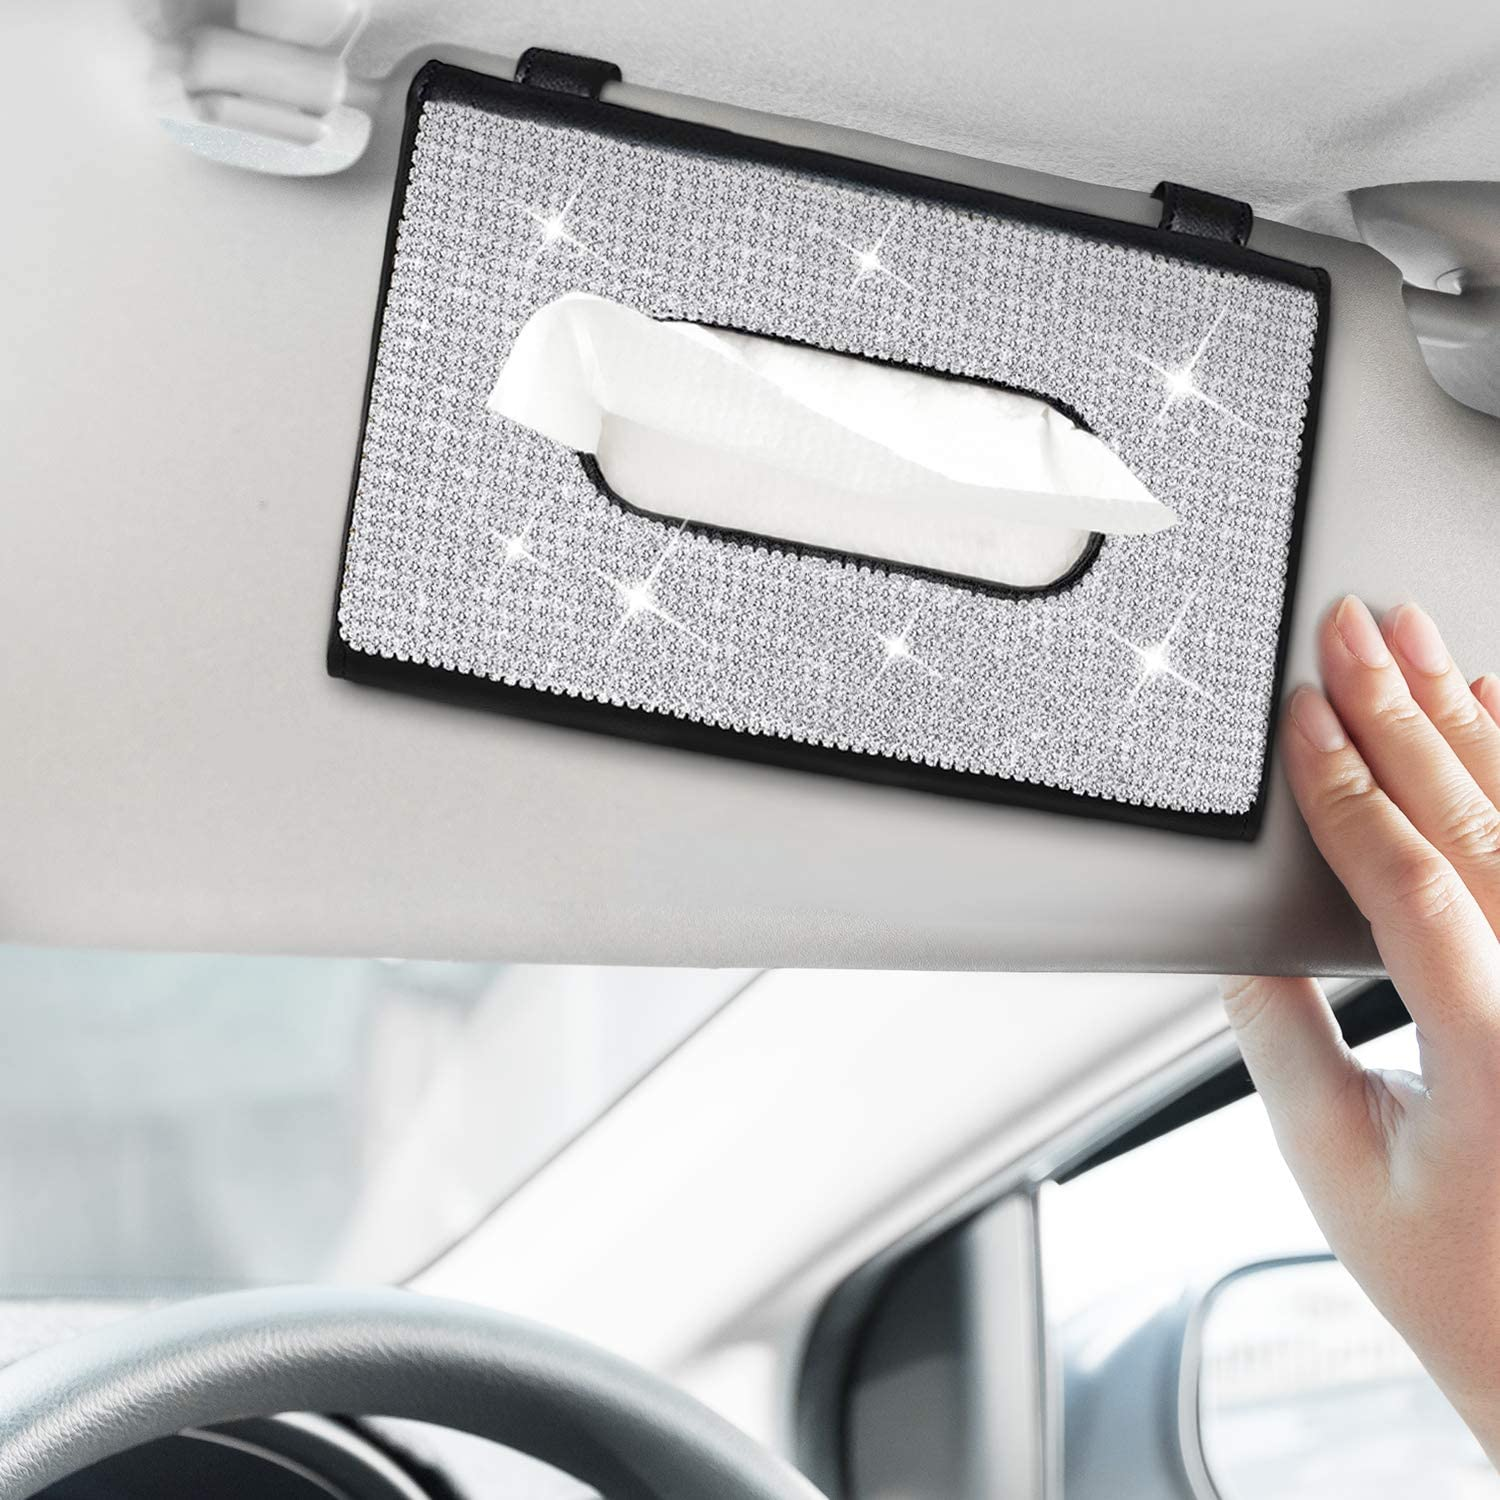 4 Pieces Bling Car Accessories Set Crystal Car Dual Port USB and Crystal Interior Ring Emblem Sticker for Women Girls Including Crystal Car Visor Paper Towel Cover Case